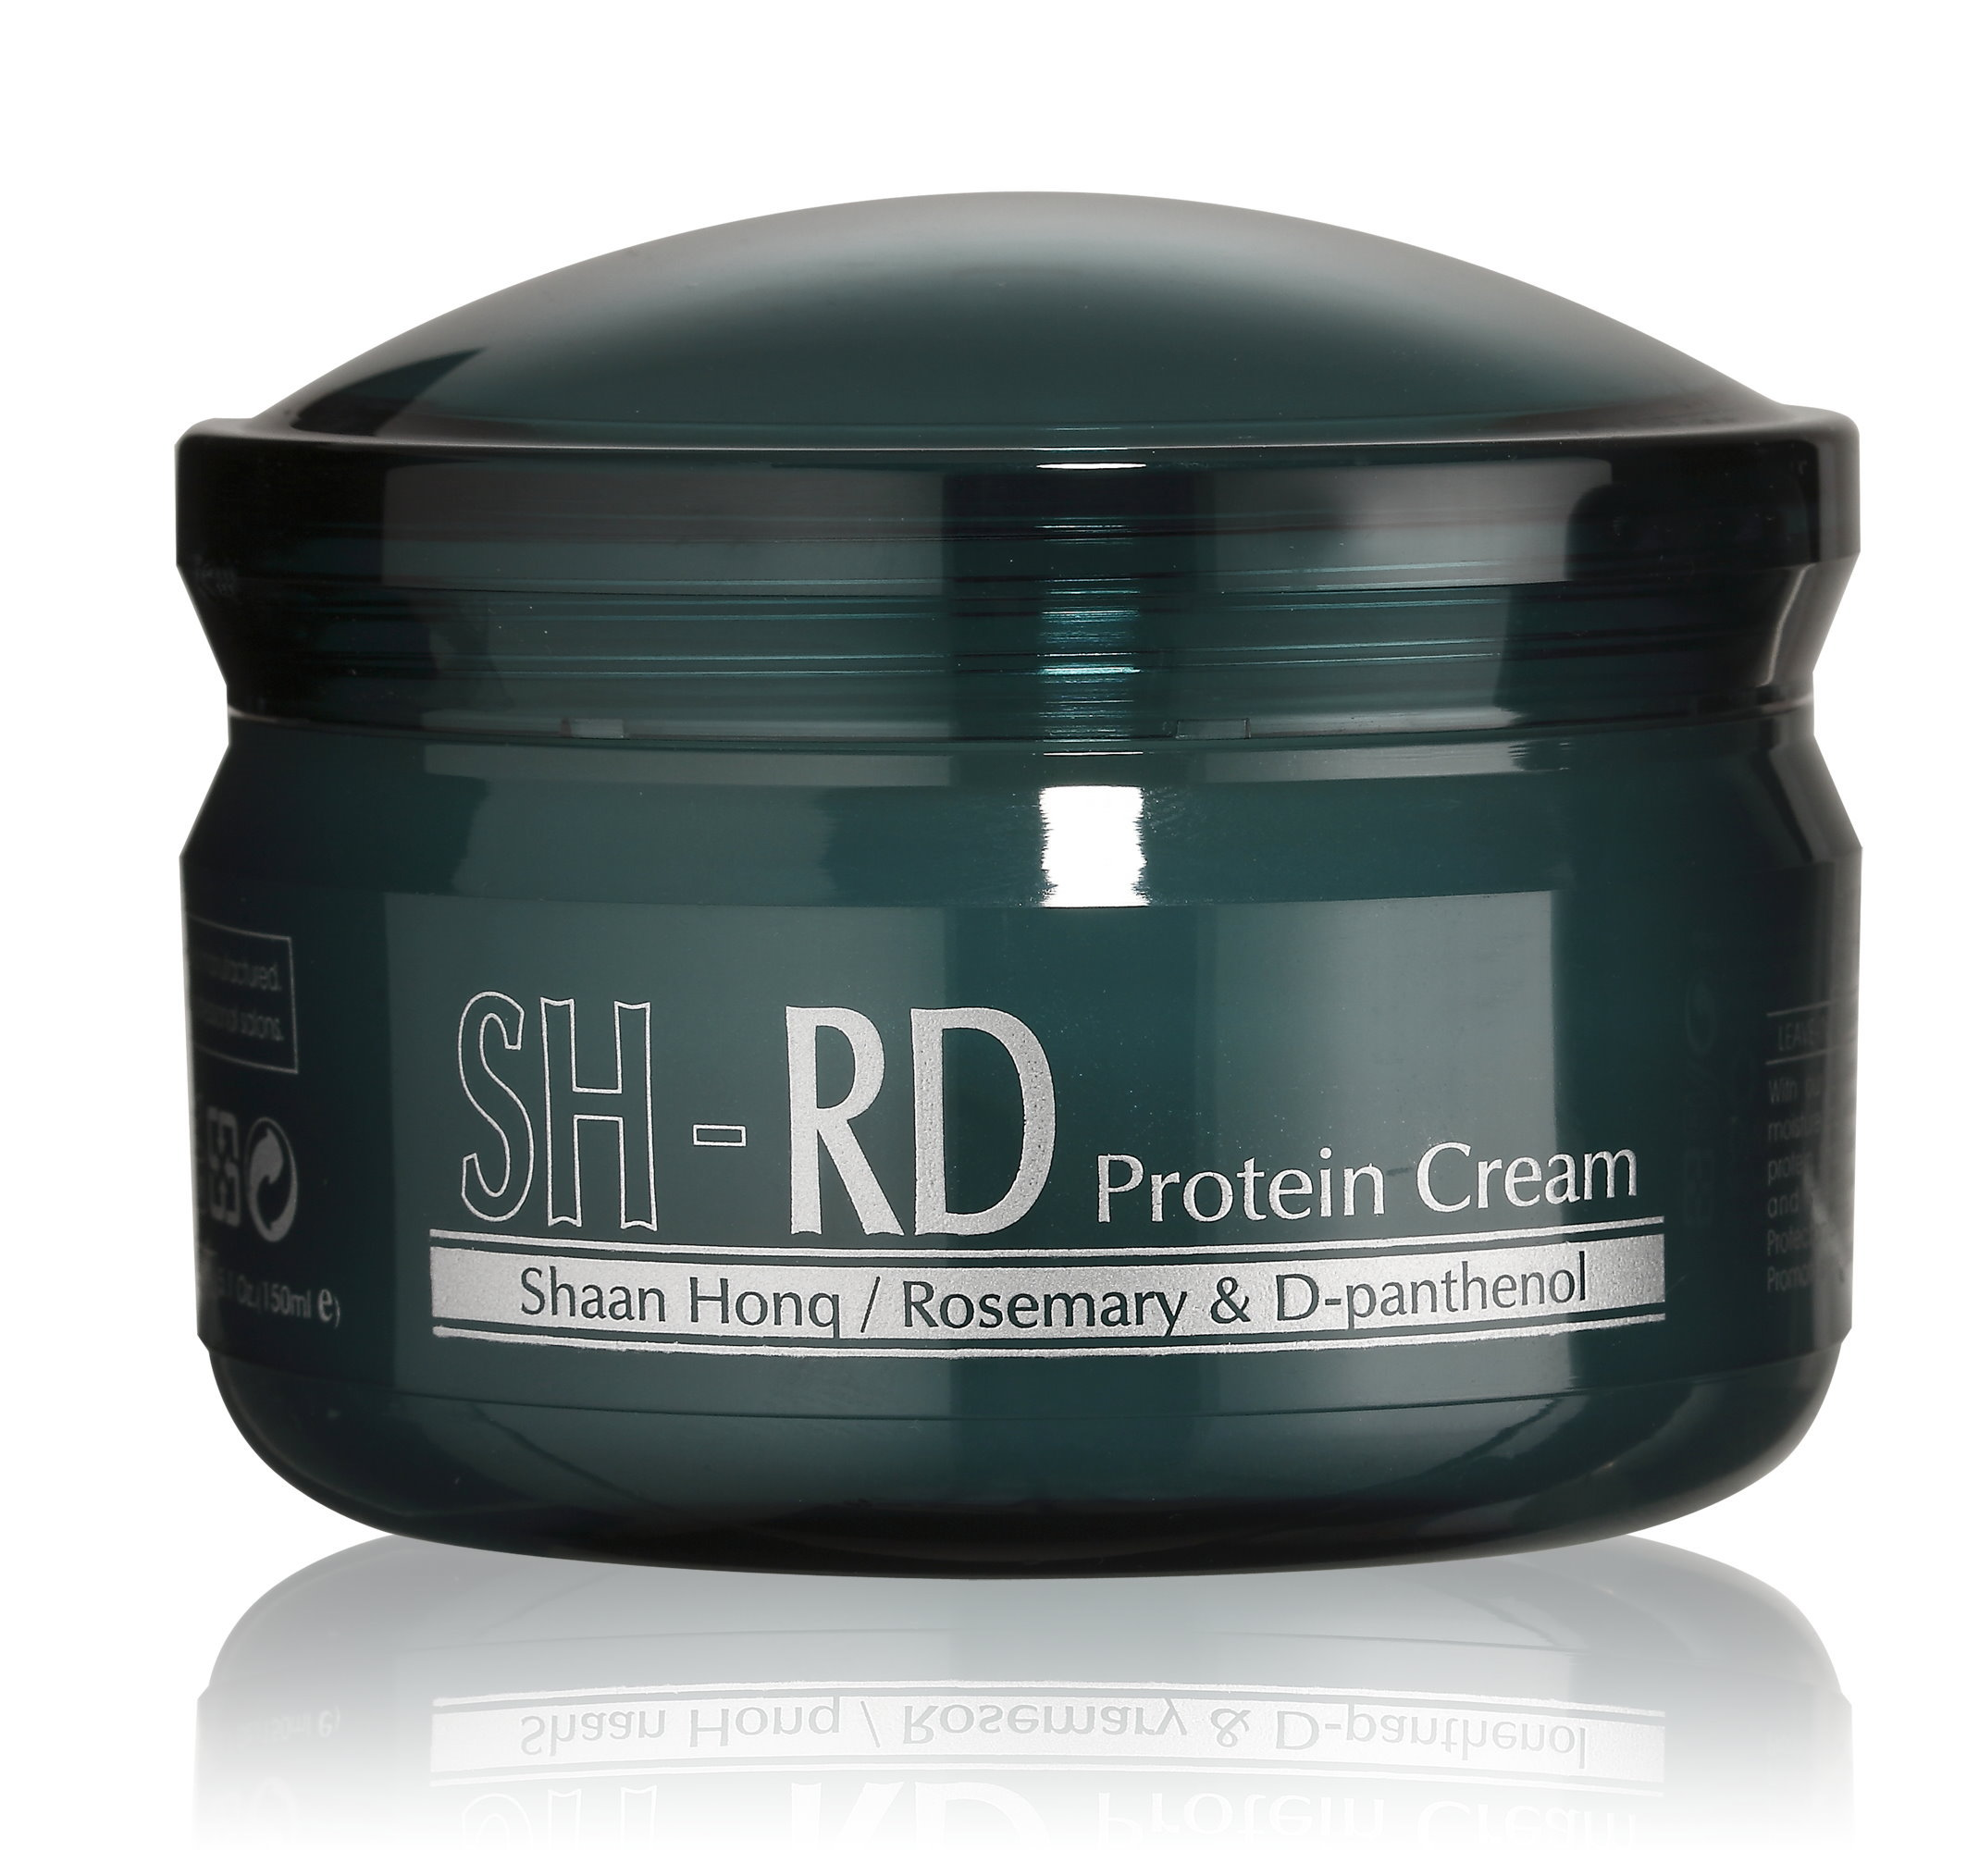 Shaan Honq Int'l Cosmetics Corp. -SH-RD-Protein Cream